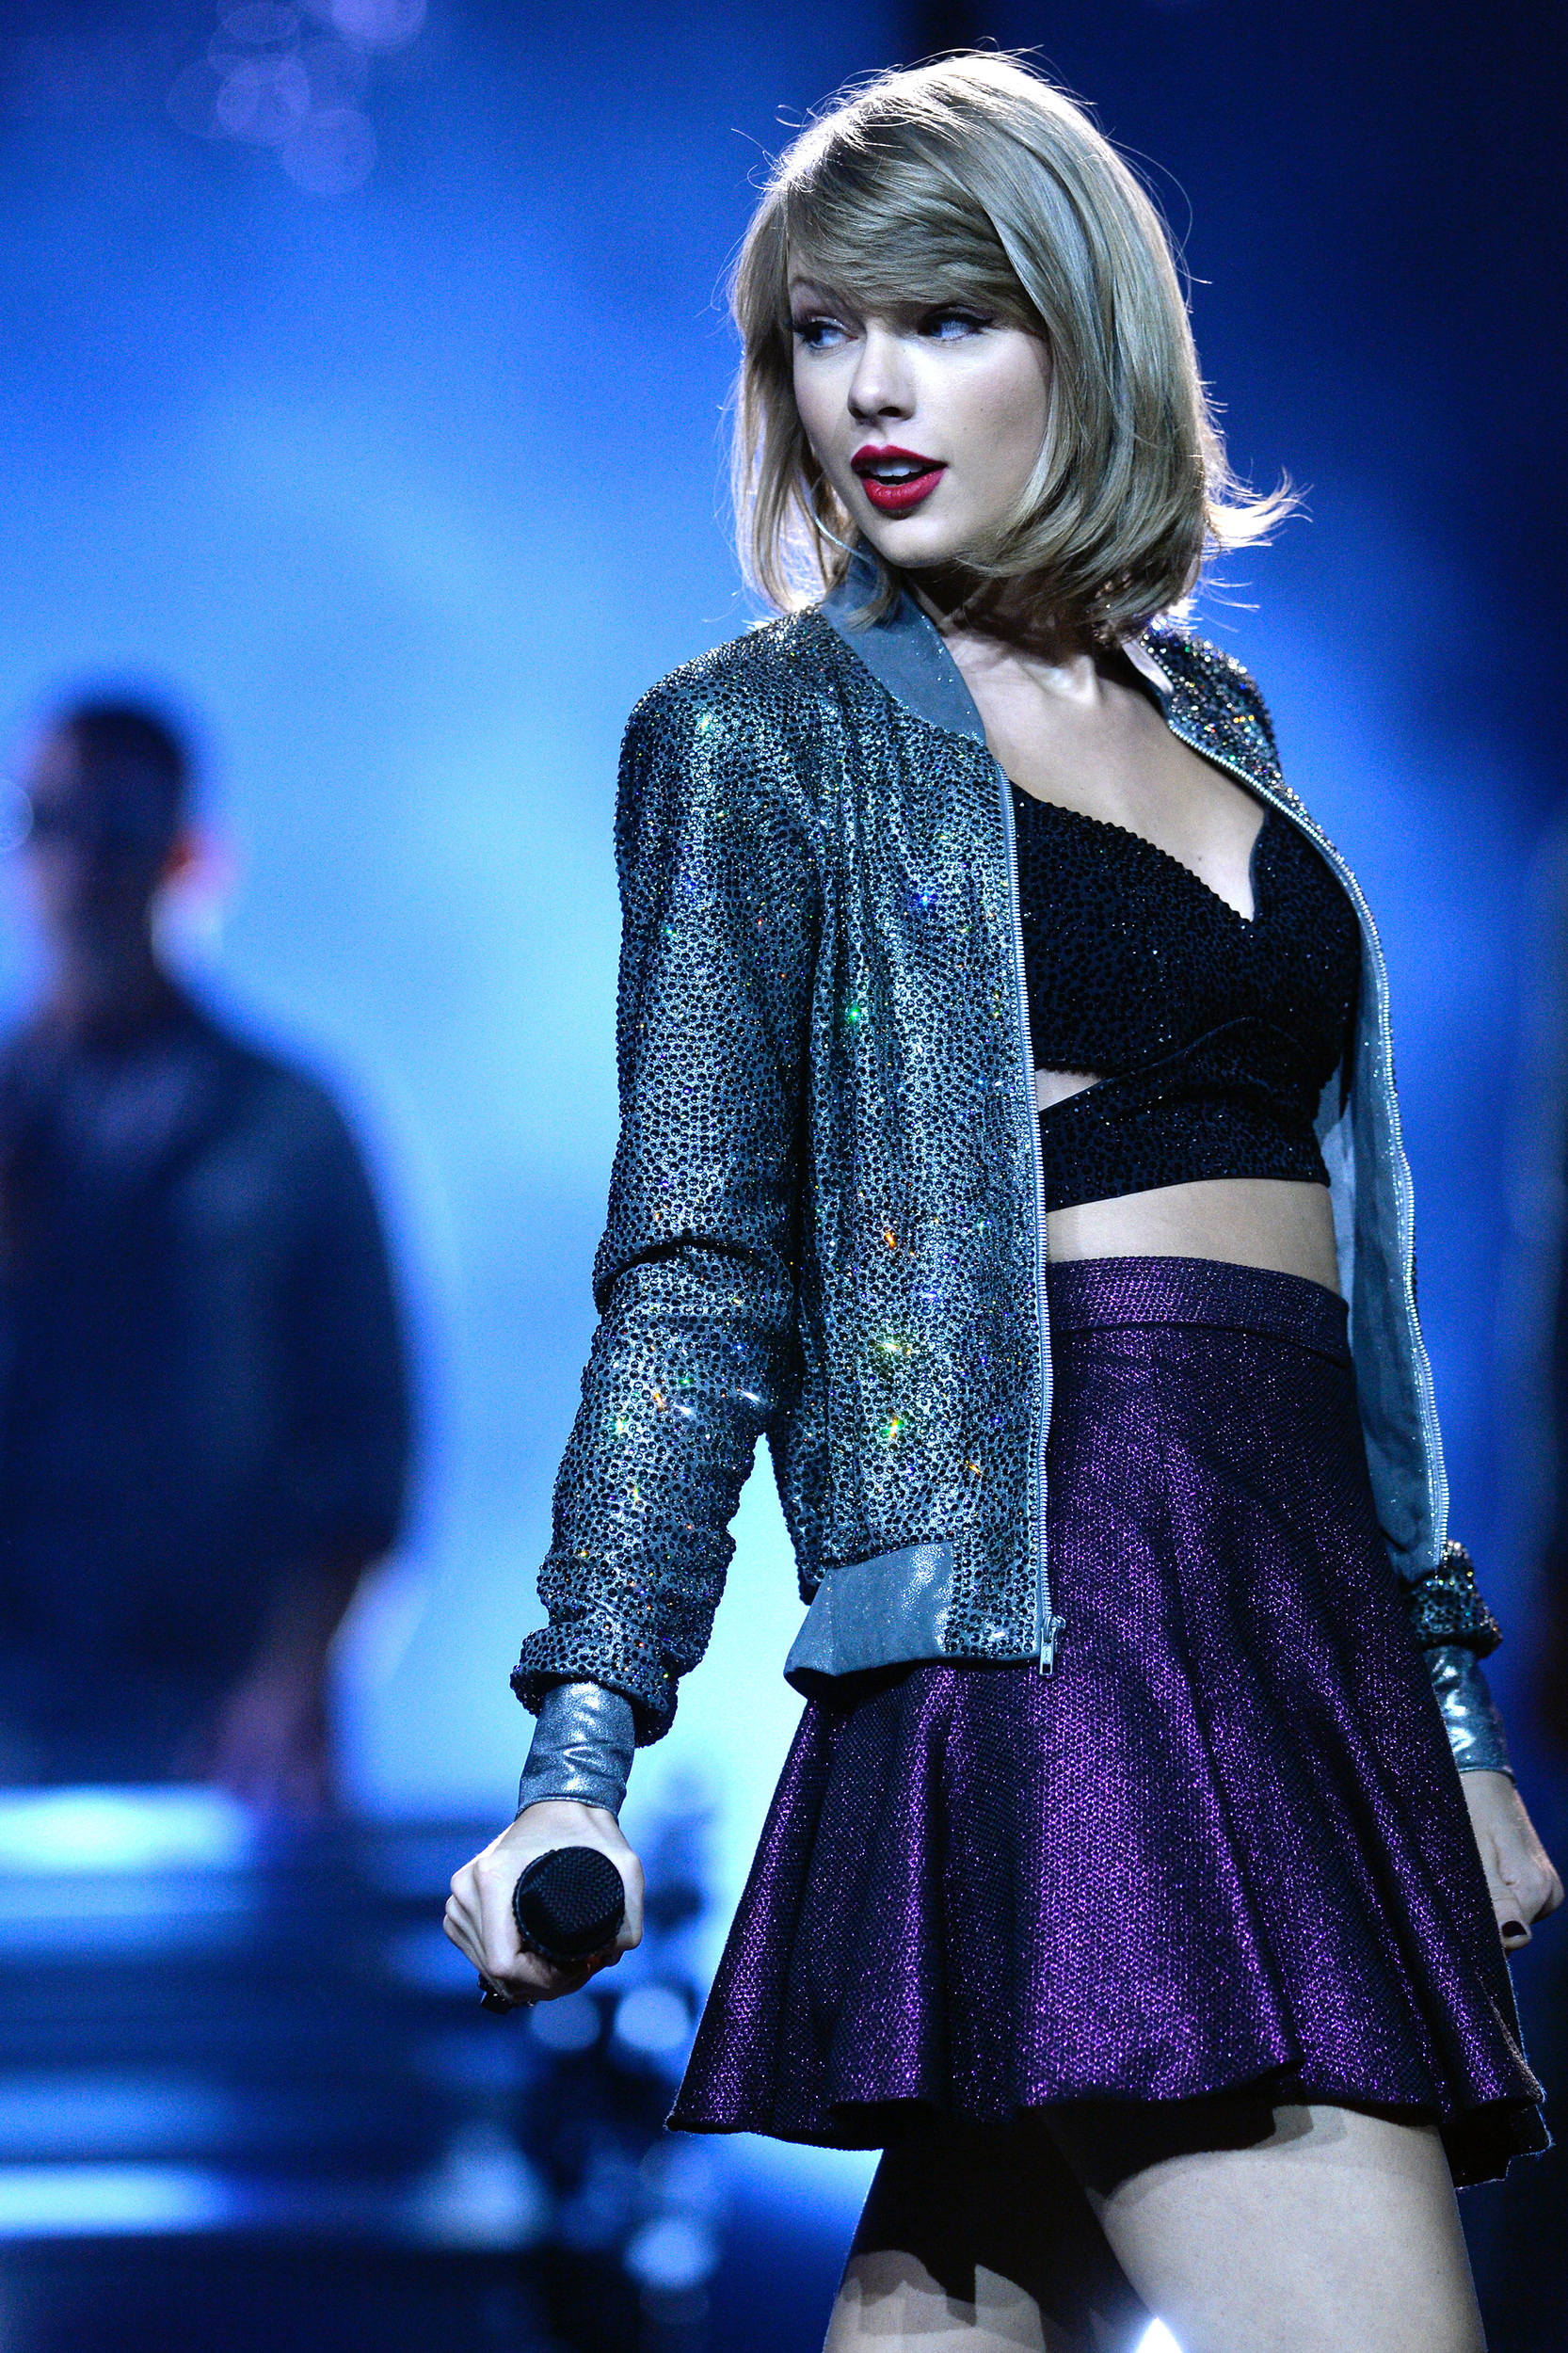 bd0cc410fa0c6a #TourTracker: Amazing snaps from Taylor Swift's 1989 Tour - AOL  Entertainment